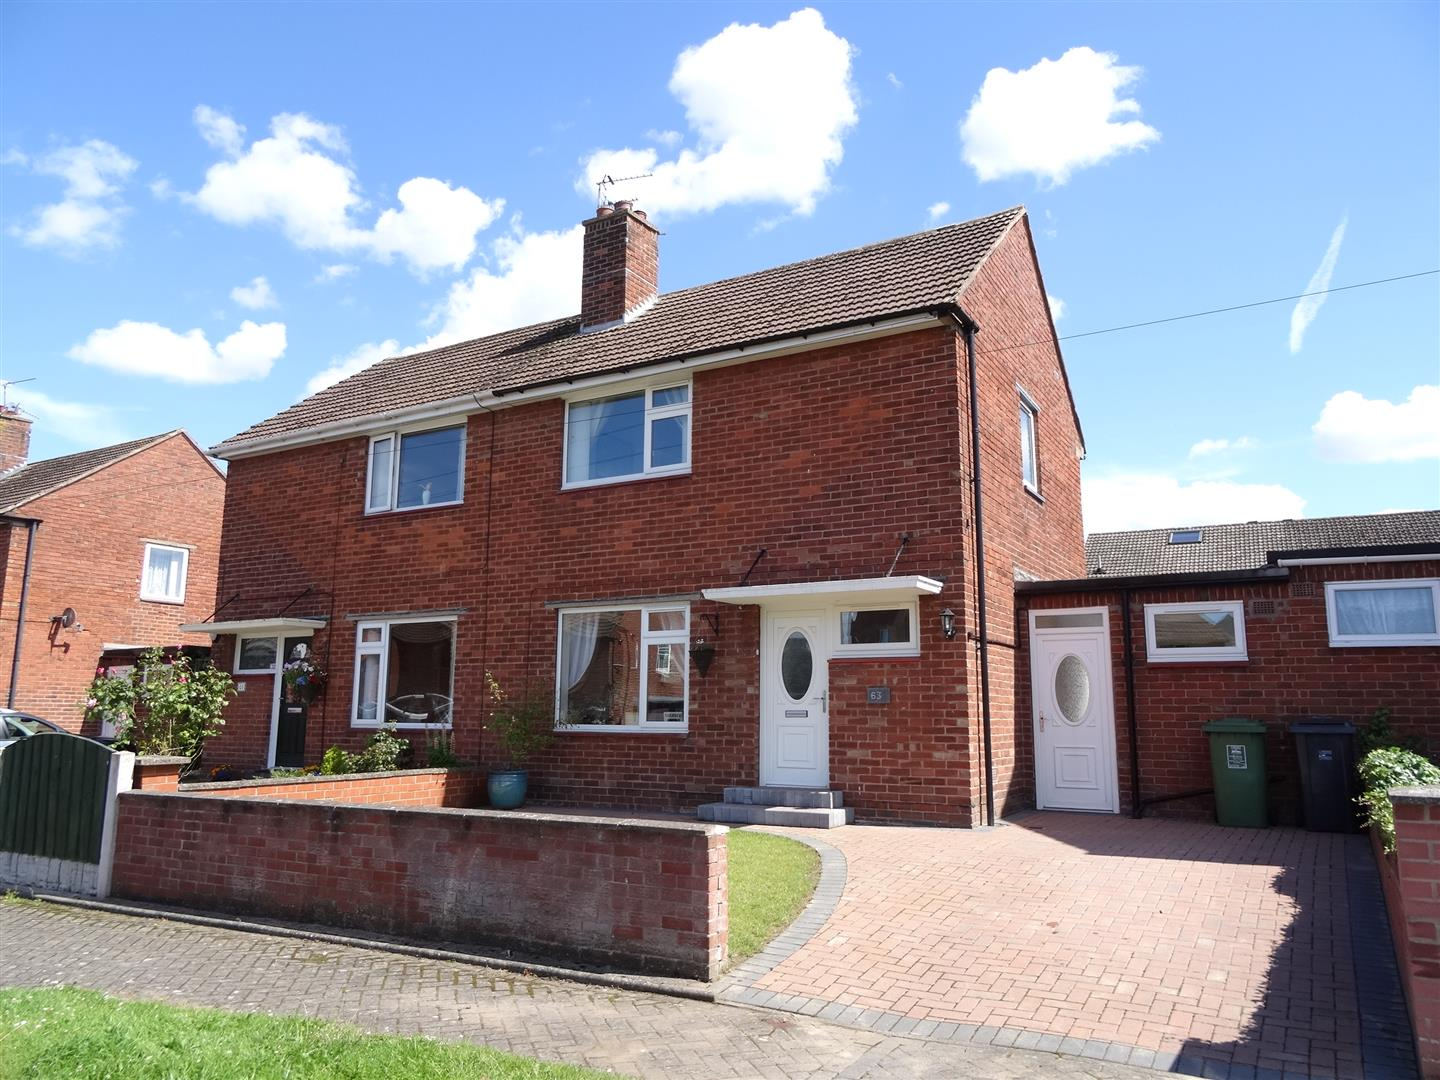 63 Mardale Road Carlisle 2 Bedrooms House - Semi-Detached For Sale